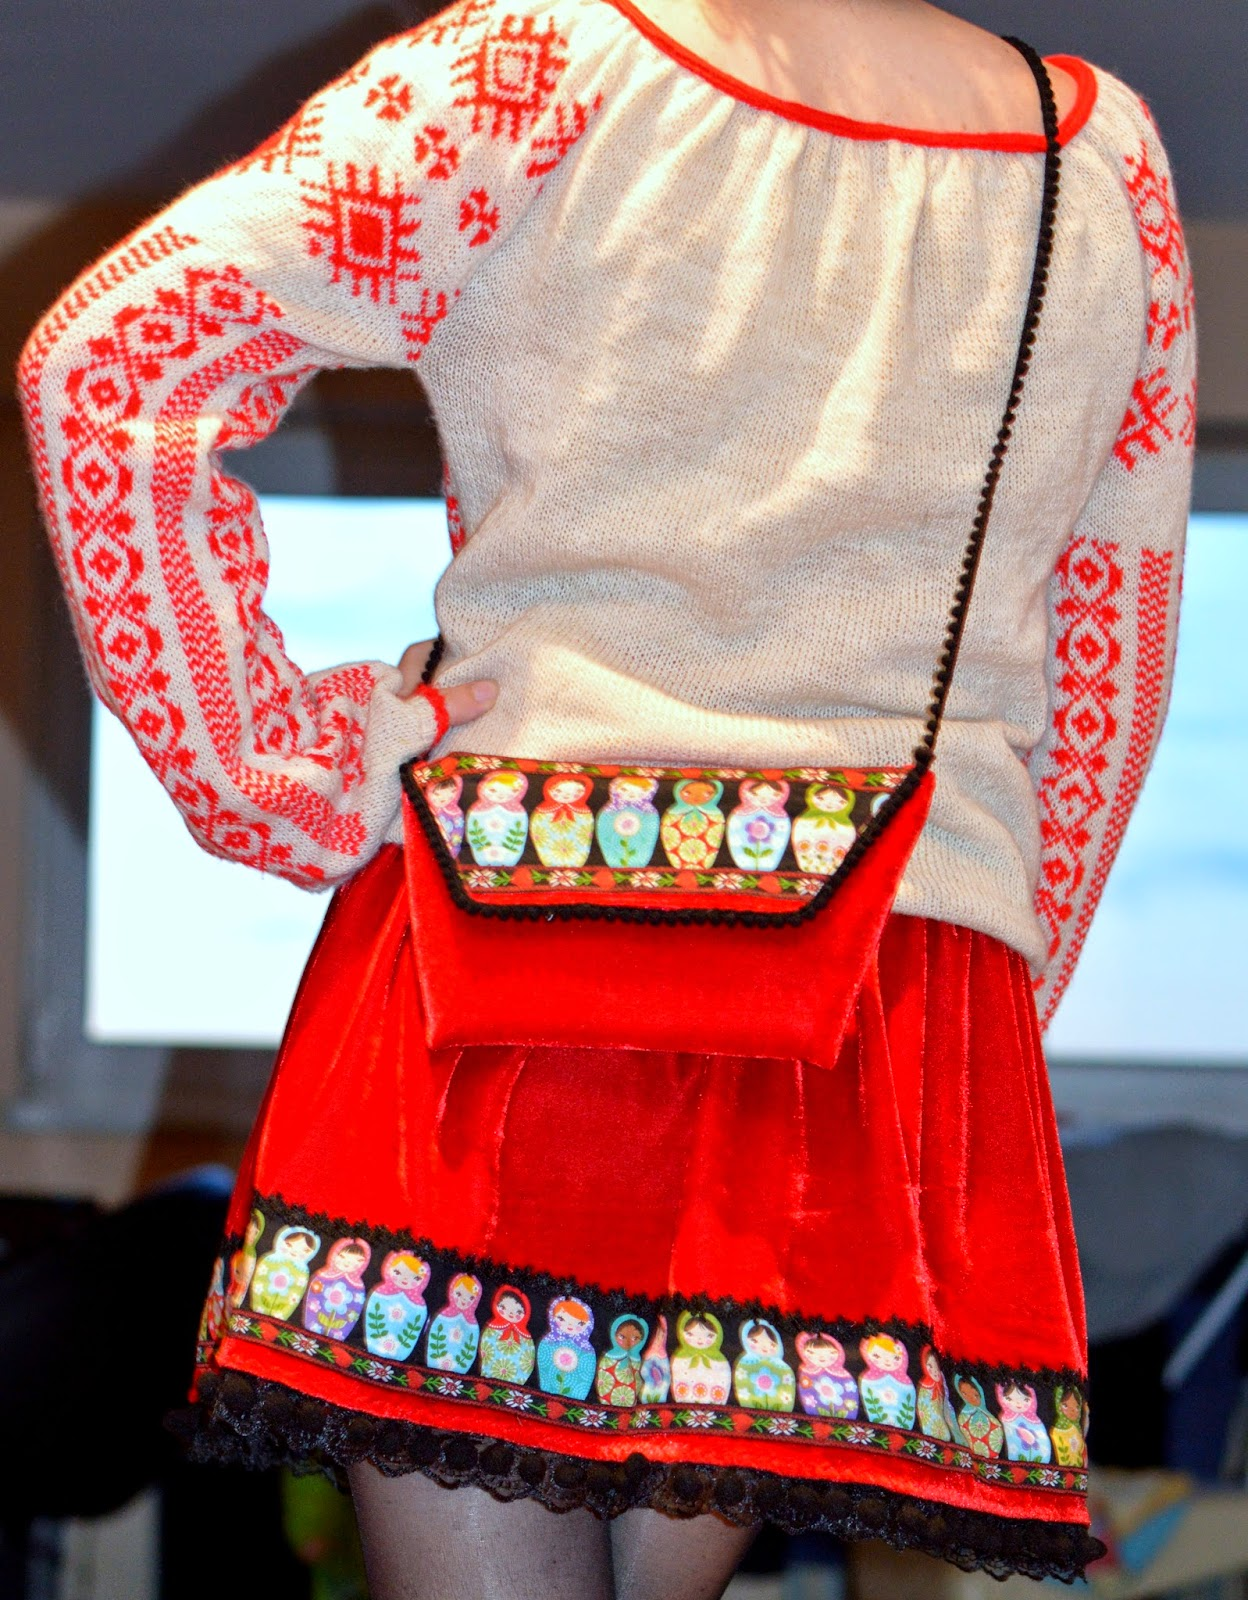 Red velvet matryoshka skirt and clutchwith pop poms and ribbons applique